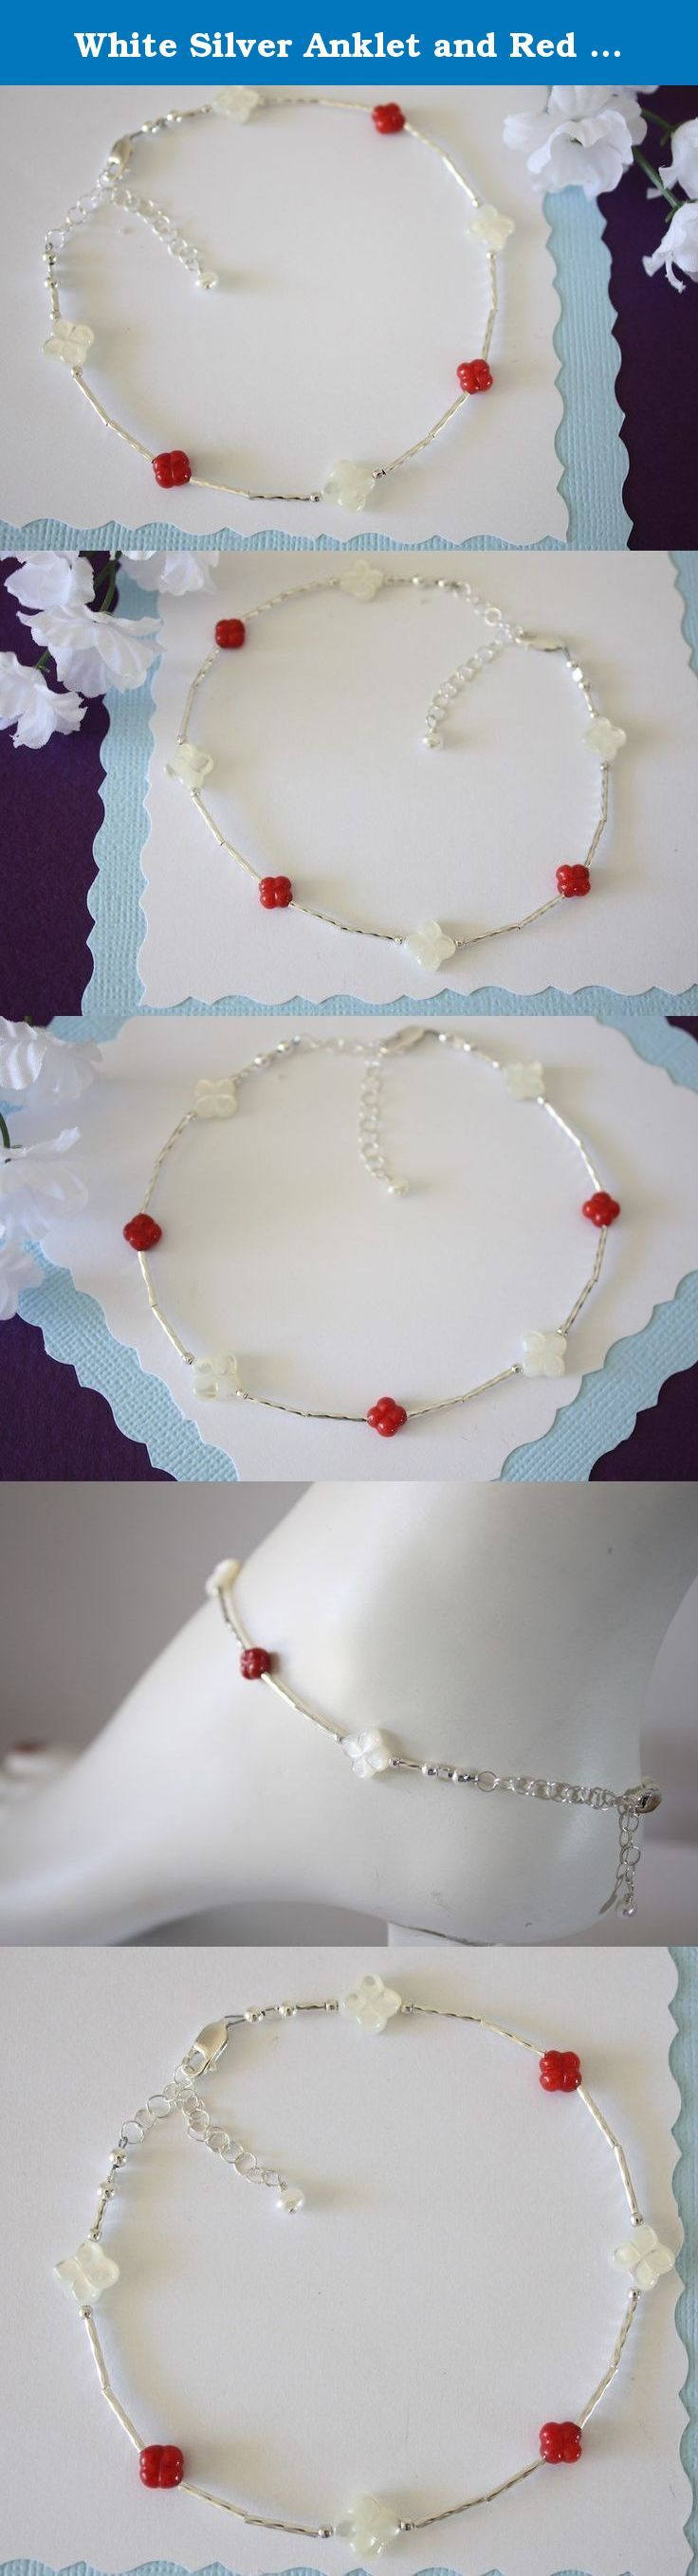 """White Silver Anklet and Red Coral, Beach Wedding, Flower Bridesmaid Gift. This fun anklet goes with everything! Handmade with beautiful Coral flowers, hand carved Mother of Pearl flowers and Liquid Sterling Silver.*** Average length is 10"""" but choose your length upon checkout. Comes with organza gift pouch, ready for gift giving."""